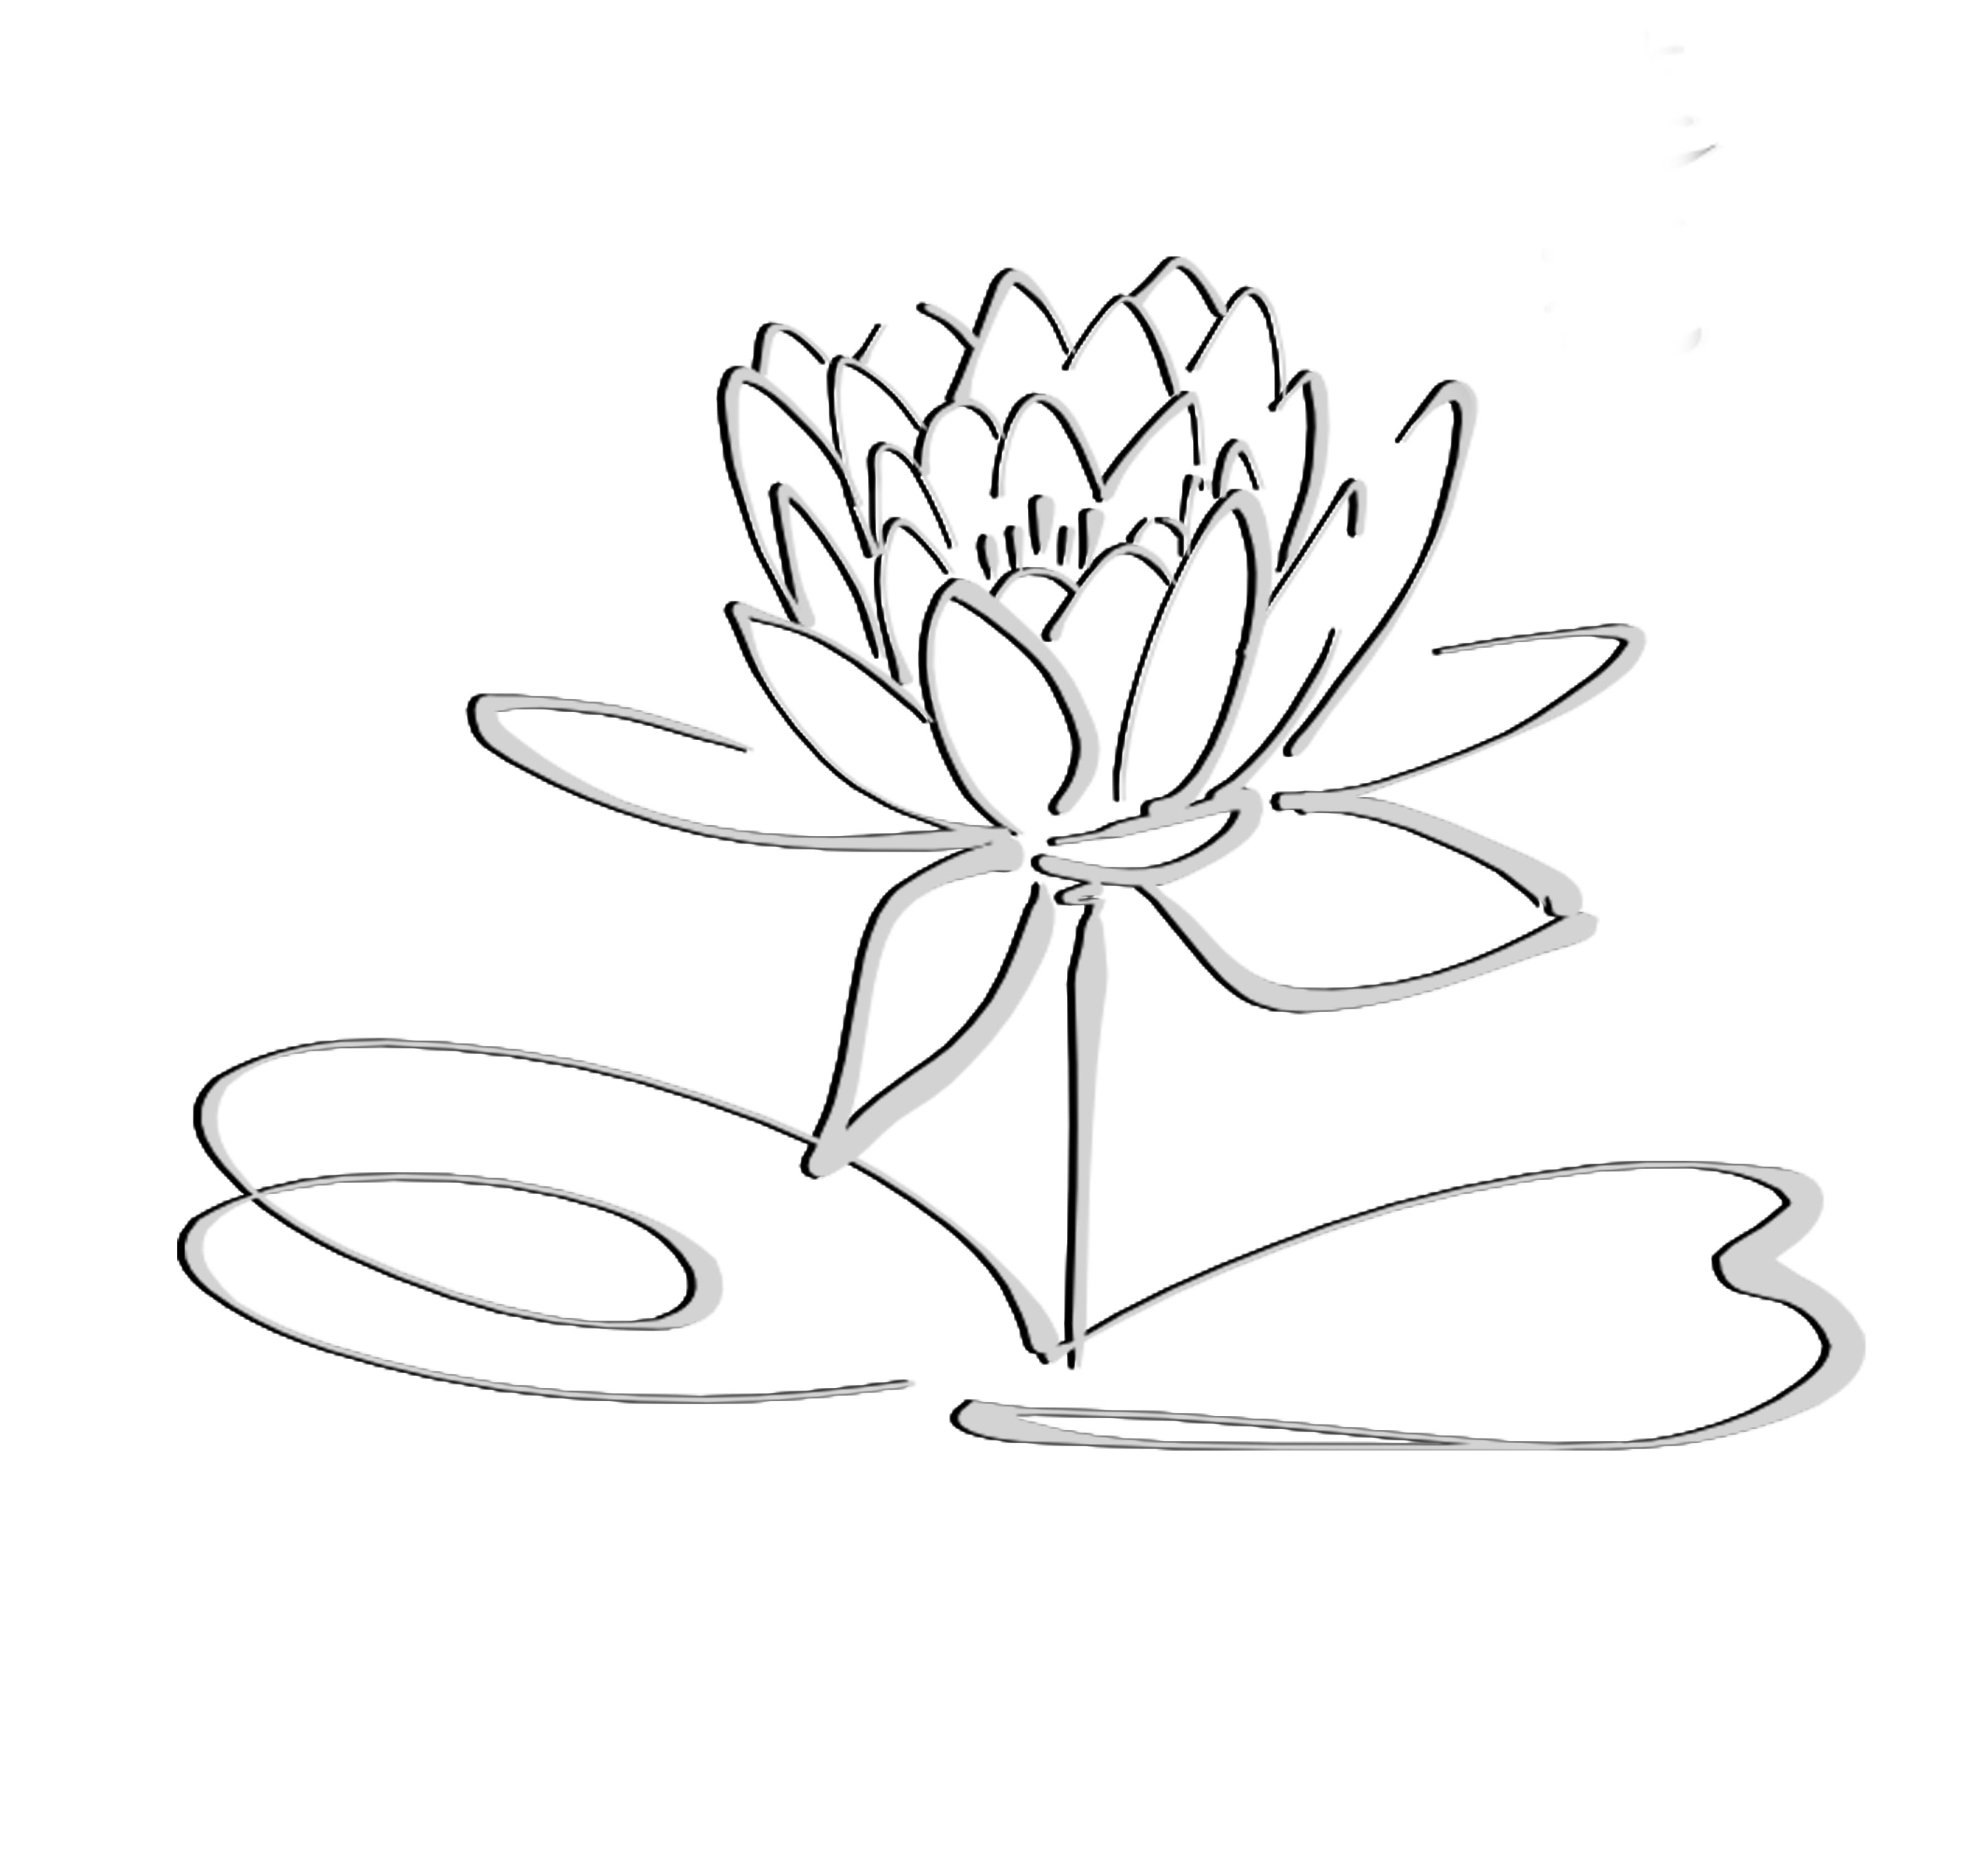 Lotus Logo Black Grayshadow Flower Only Free Images At Clkercom